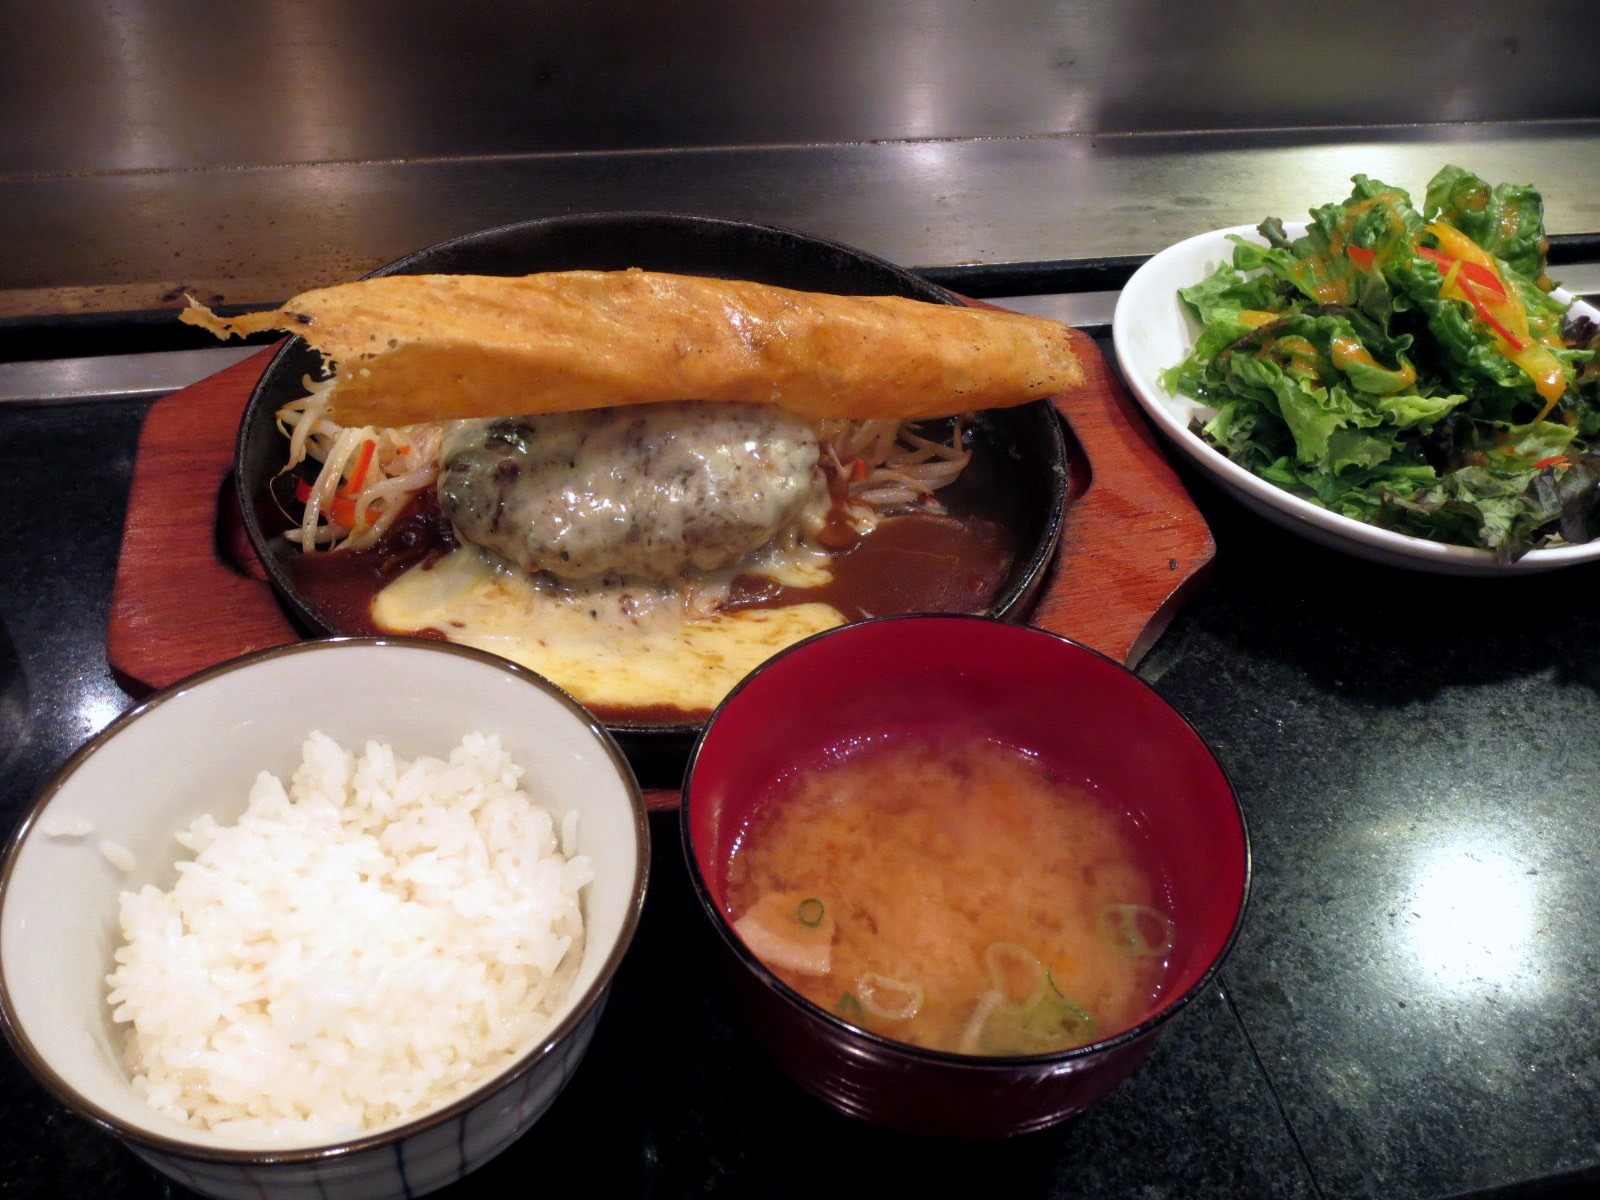 Agu Pork Hamburger Steak, Ground In-Store (150g) – 1,000 yen